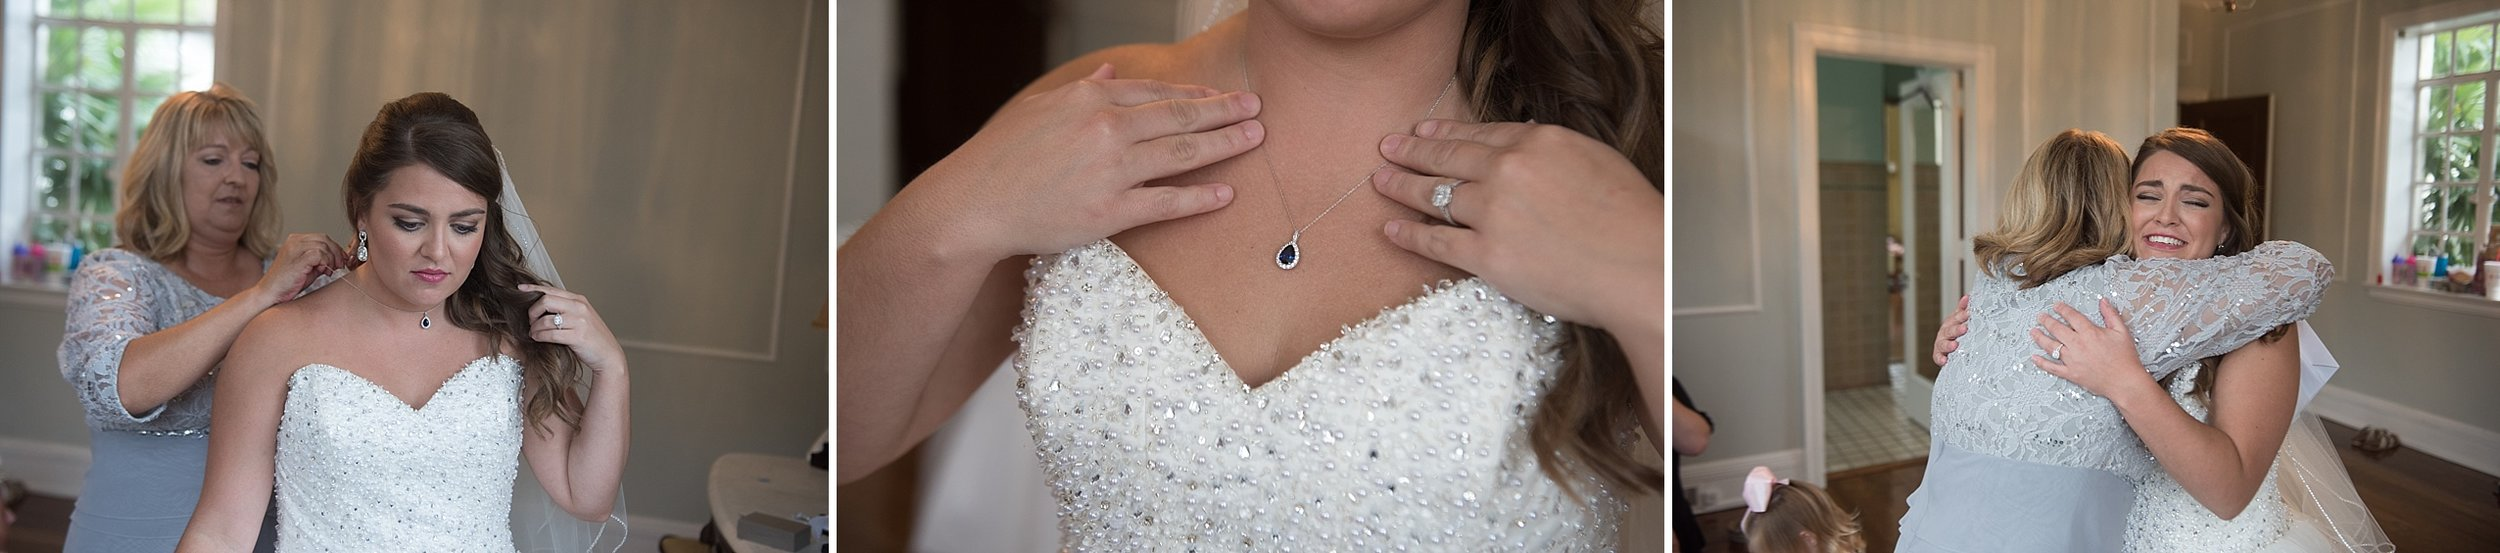 Mother of the bride gives Bride a sapphire necklace